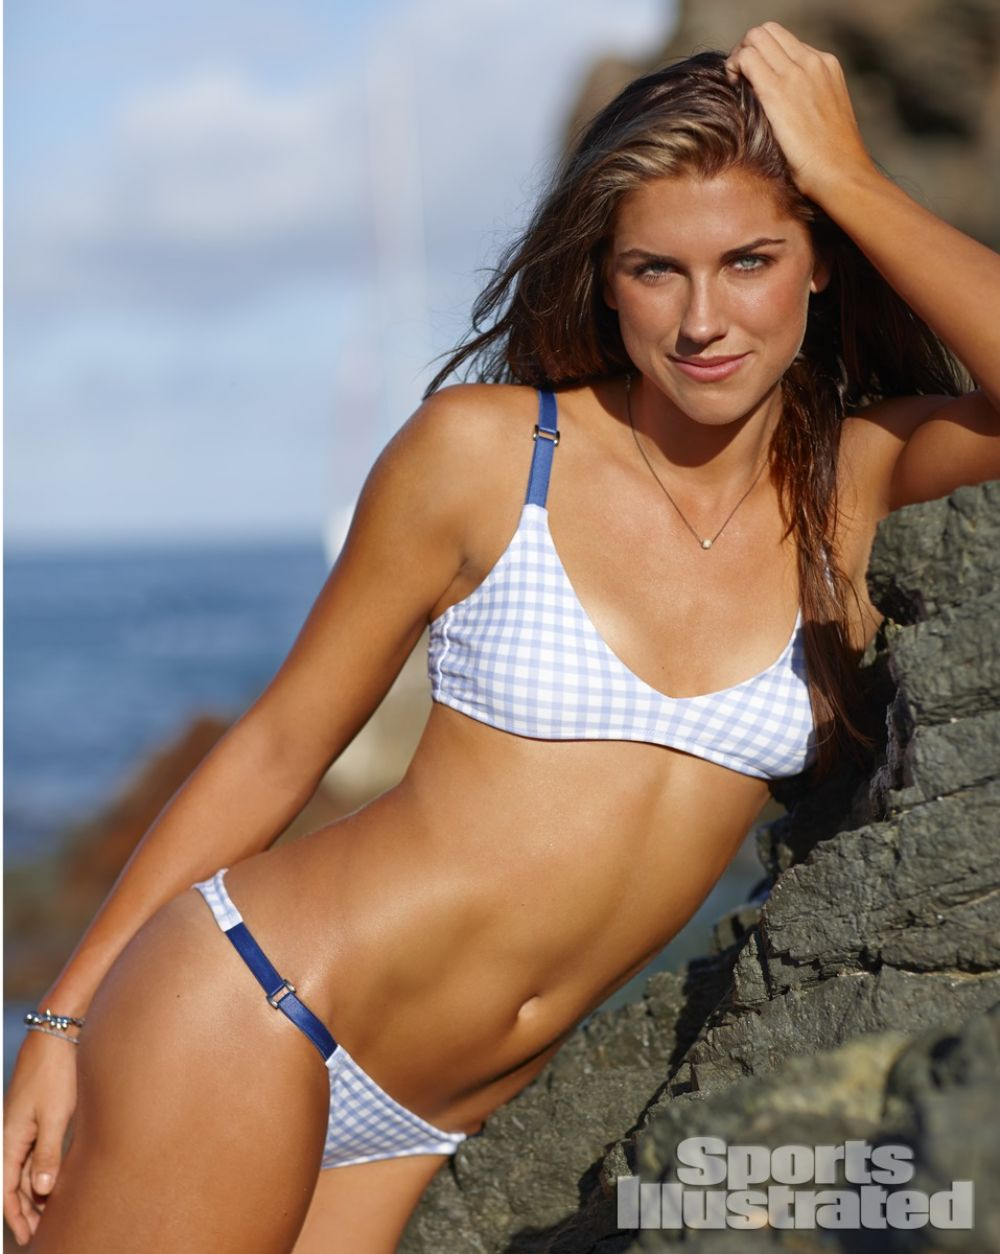 alex-morgan-in-sports-illustrated-2014-swimsuit-issue_9.jpg - 128.27 KB